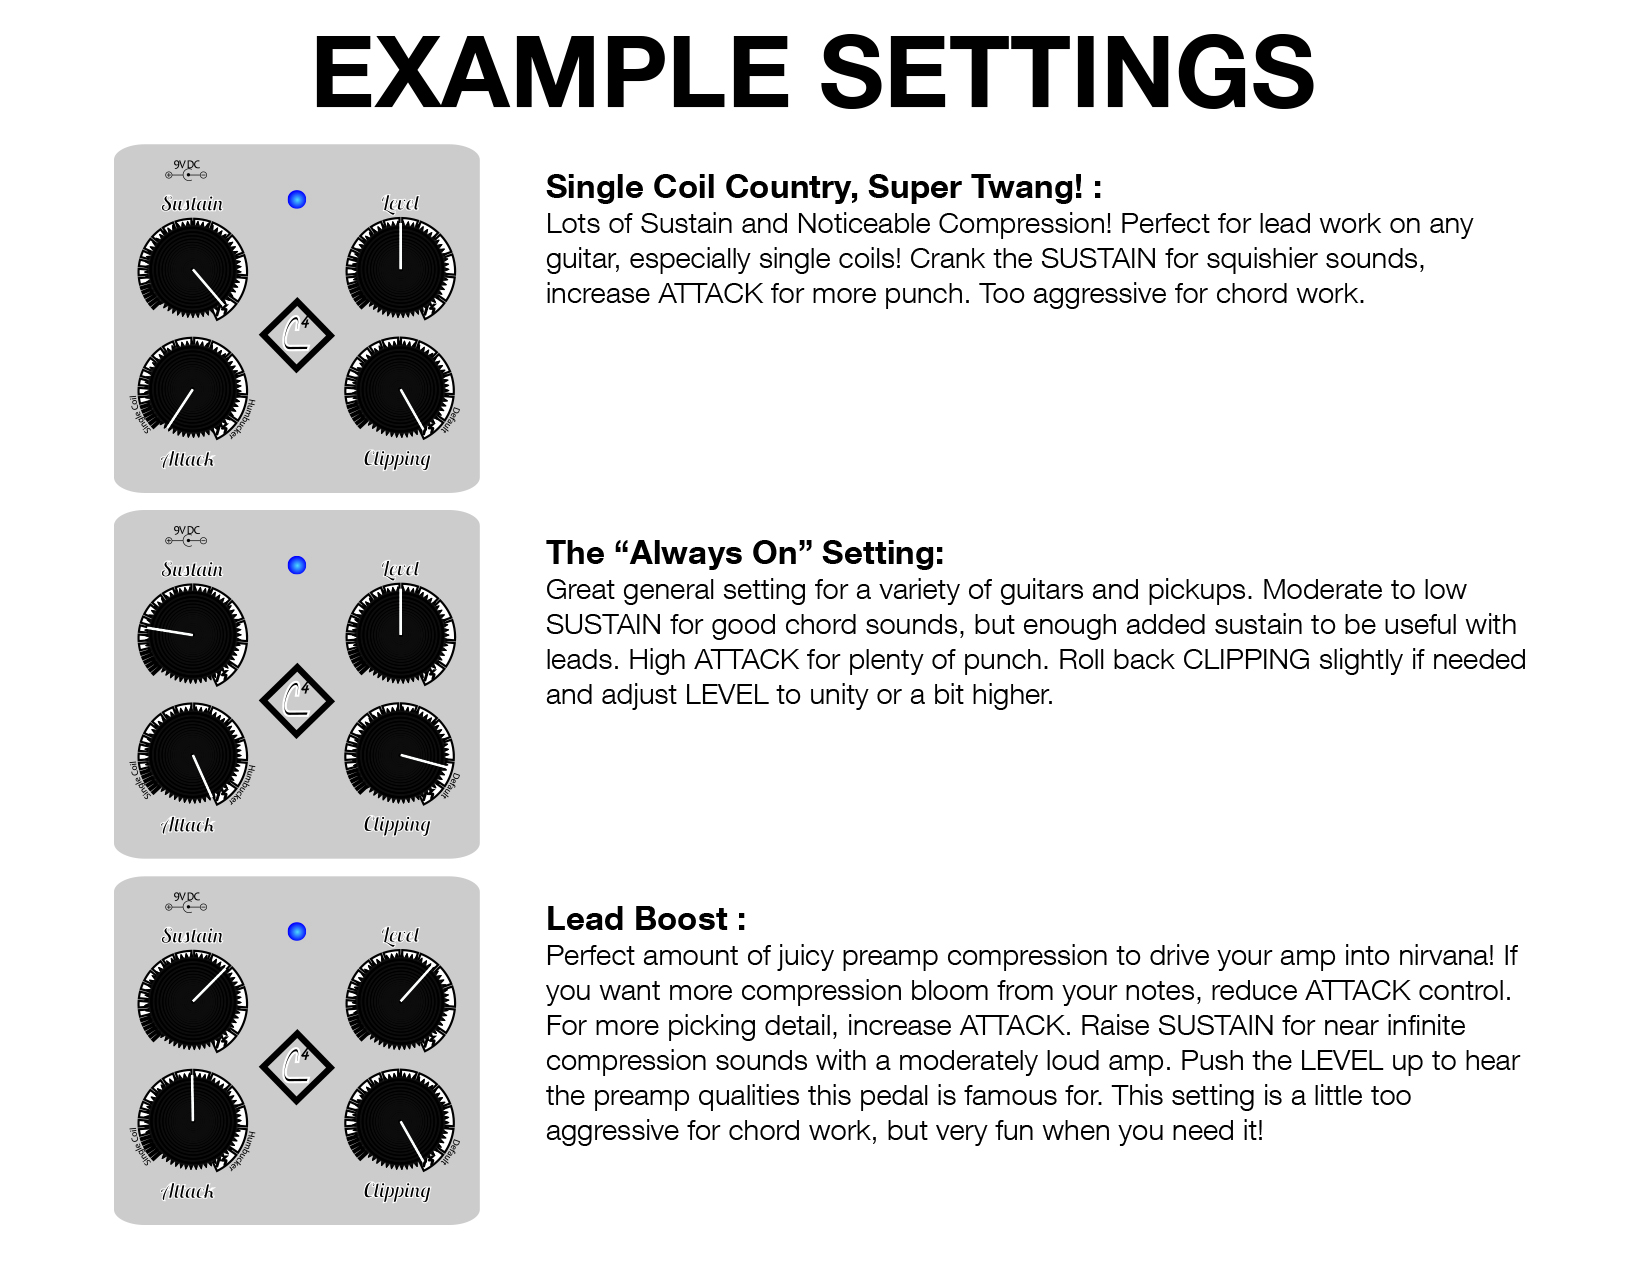 Keeley 4 knob compressor by robert keeley keeley compressor instructions manual card hexwebz Images